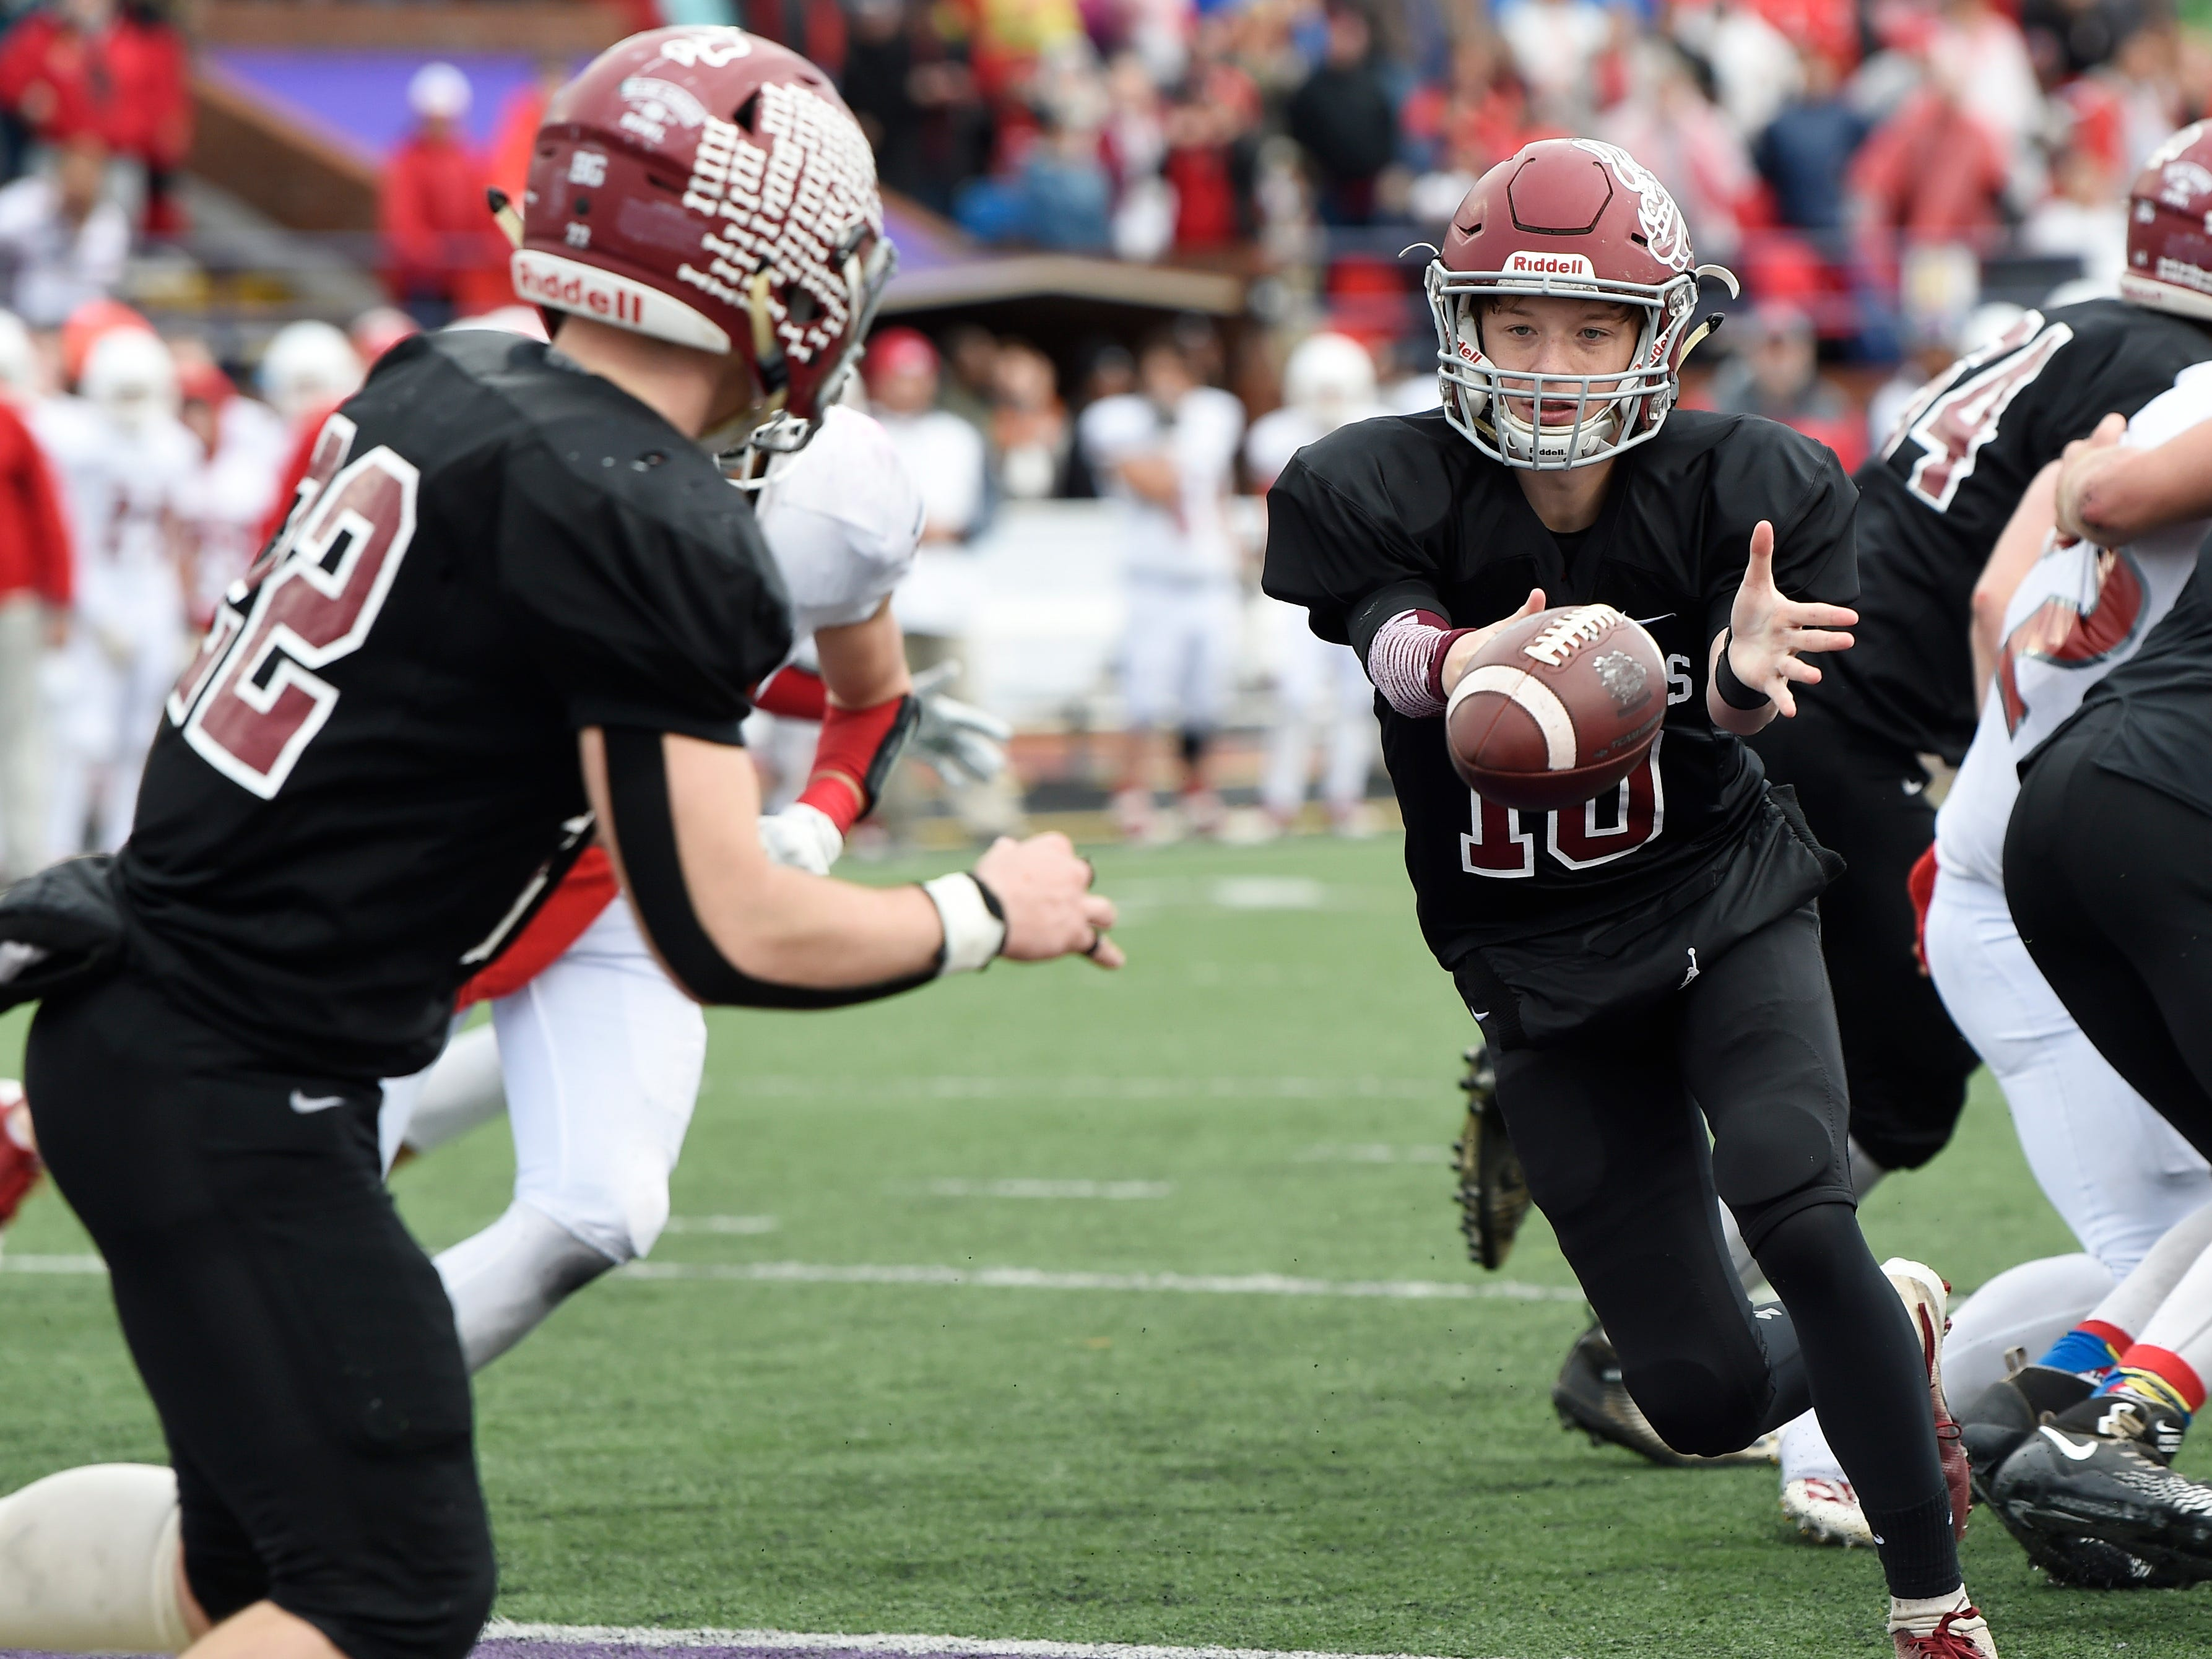 Cornersville's Henlee Mitchell (10) pitches back to Eli Woodard (22) in the third quarter at the Class I-A BlueCross Bowl state championship at Tennessee Tech's Tucker Stadium in Cookeville, Tenn., on Saturday, Dec. 1, 2018.